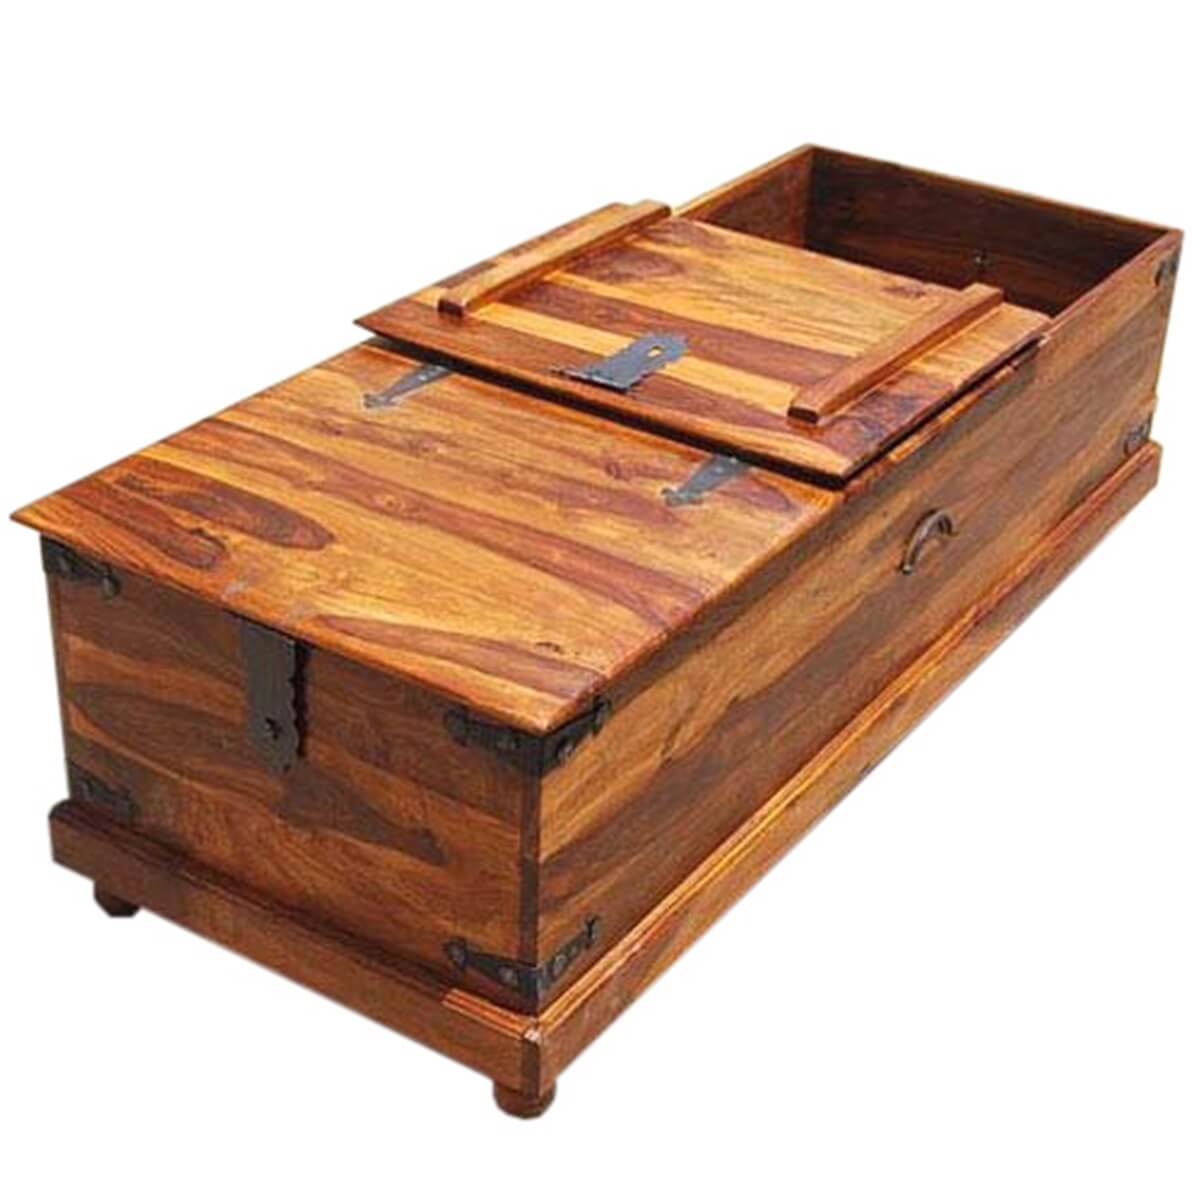 Solid wood bedroom kokanee rustic storage coffee table for Bedroom coffee table